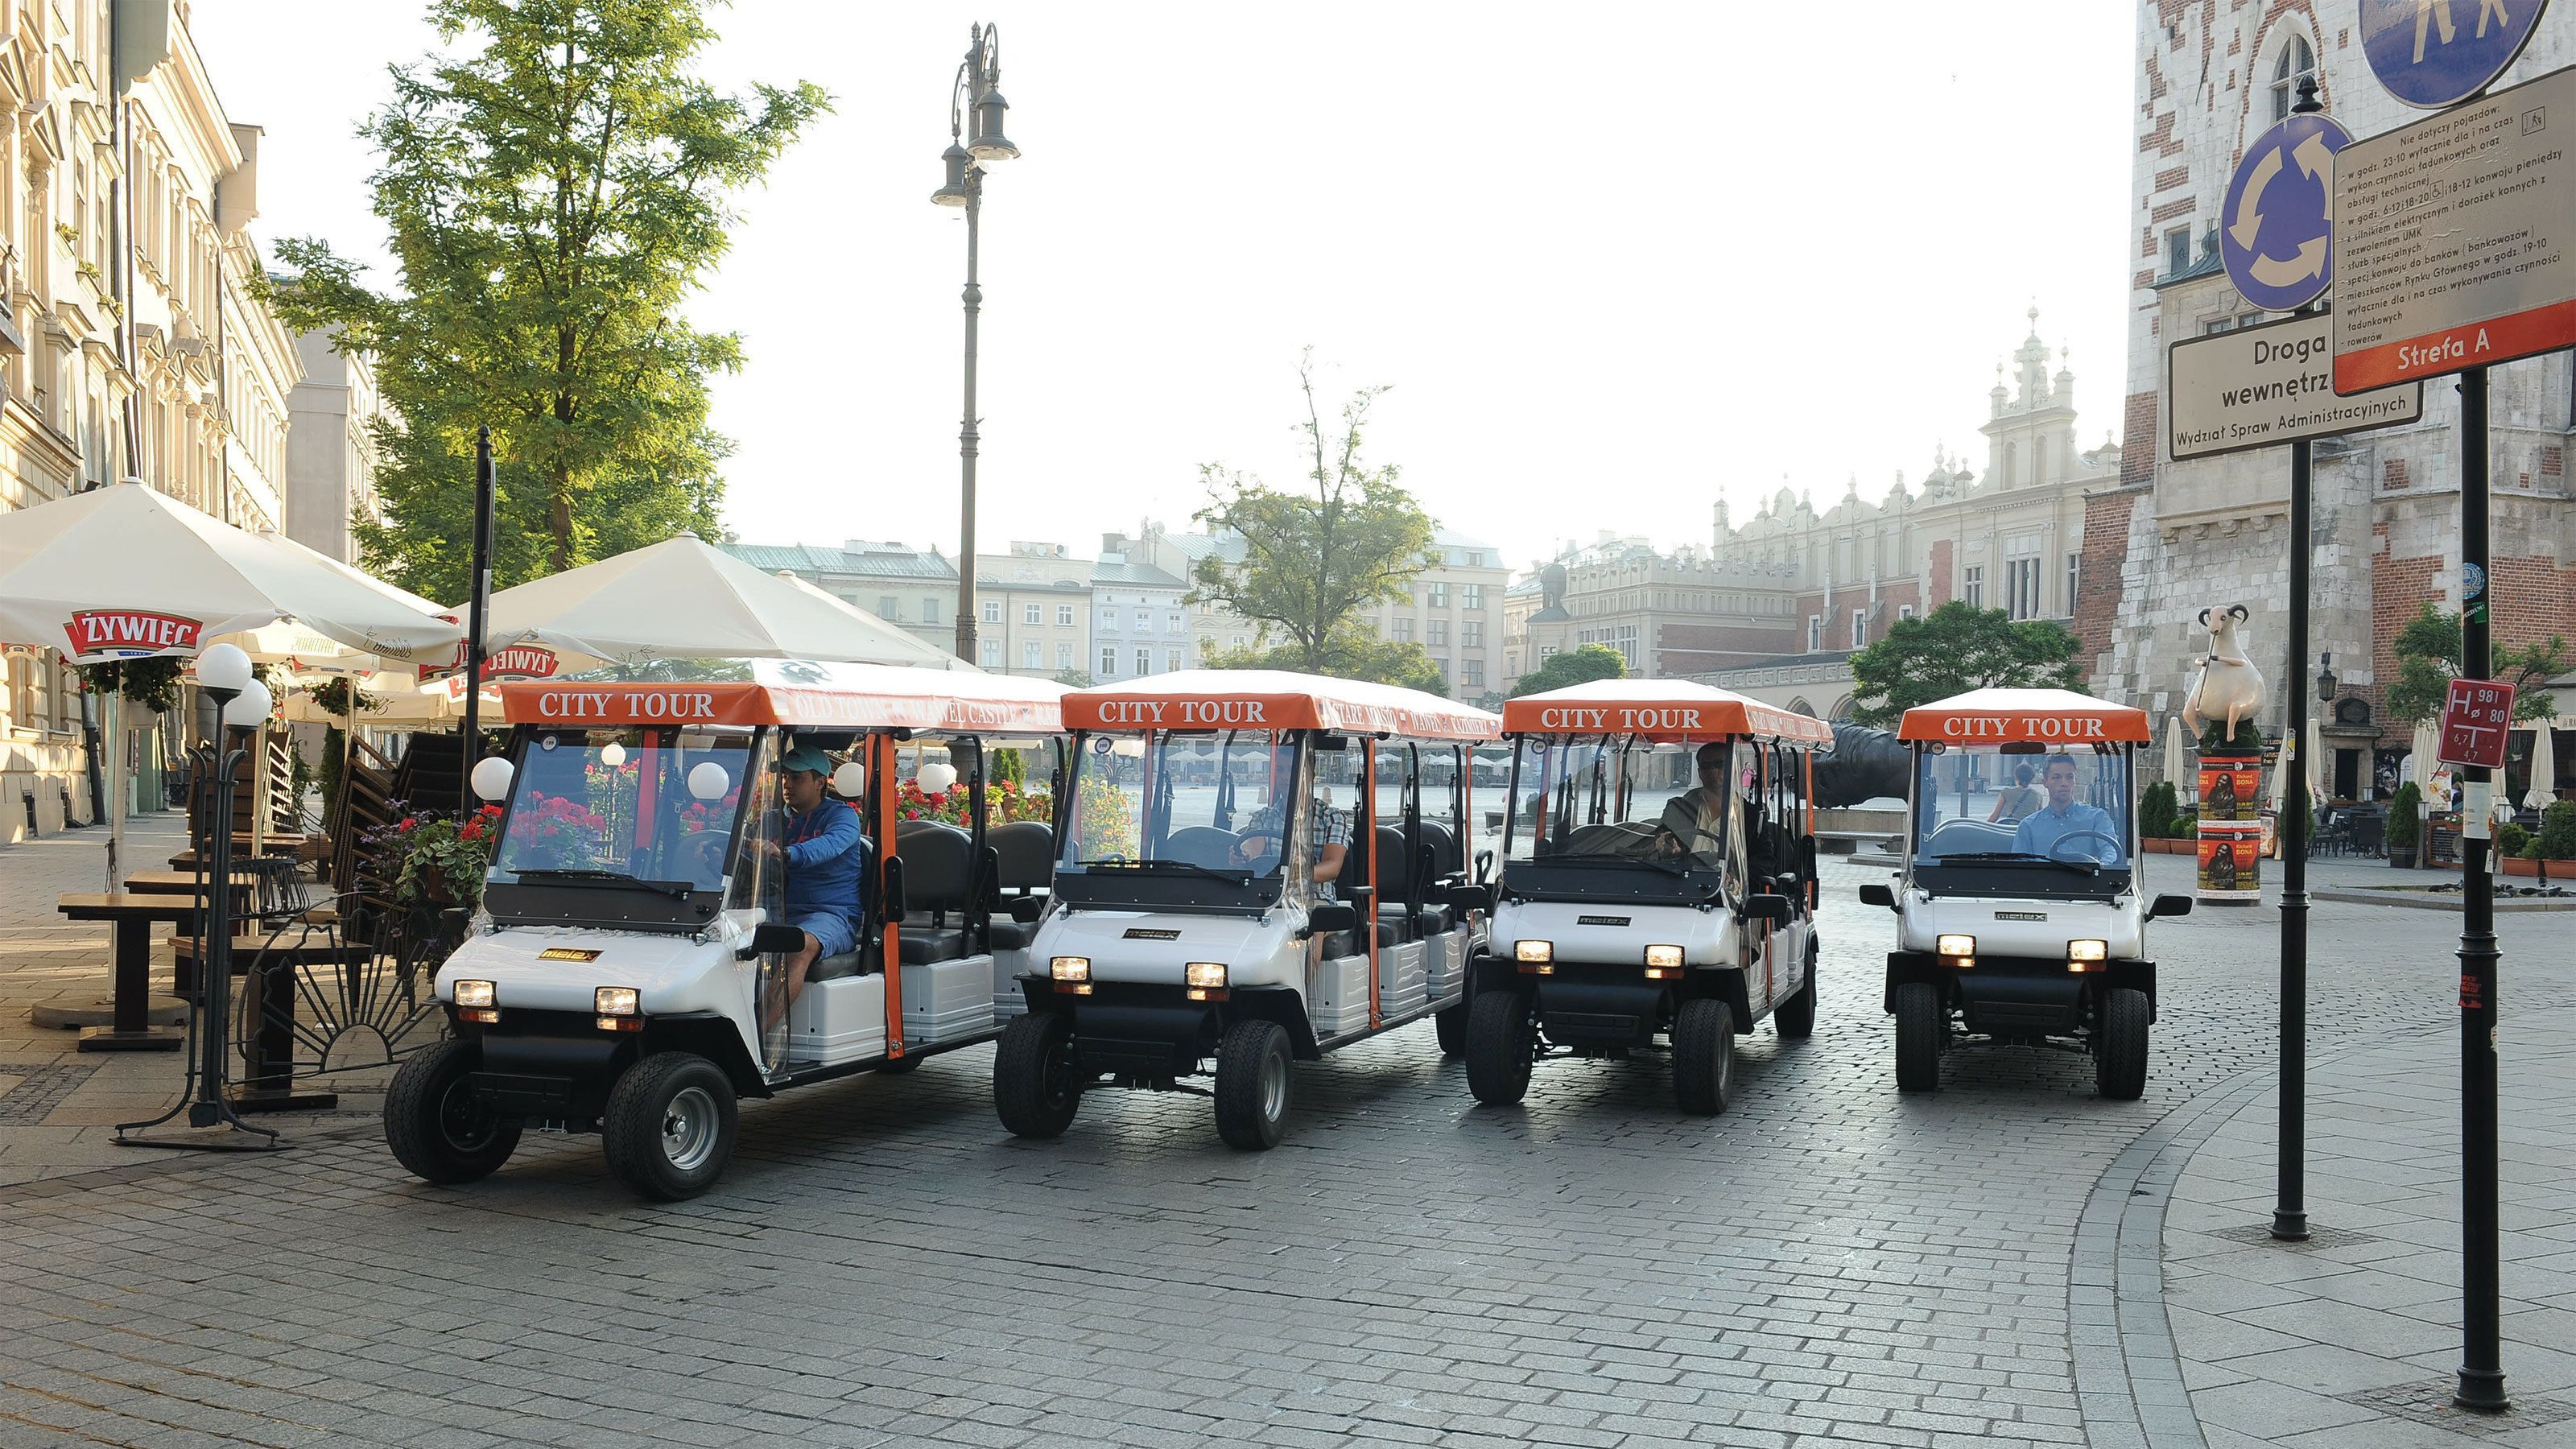 Eco vehicles in courtyard with several tourists on board.